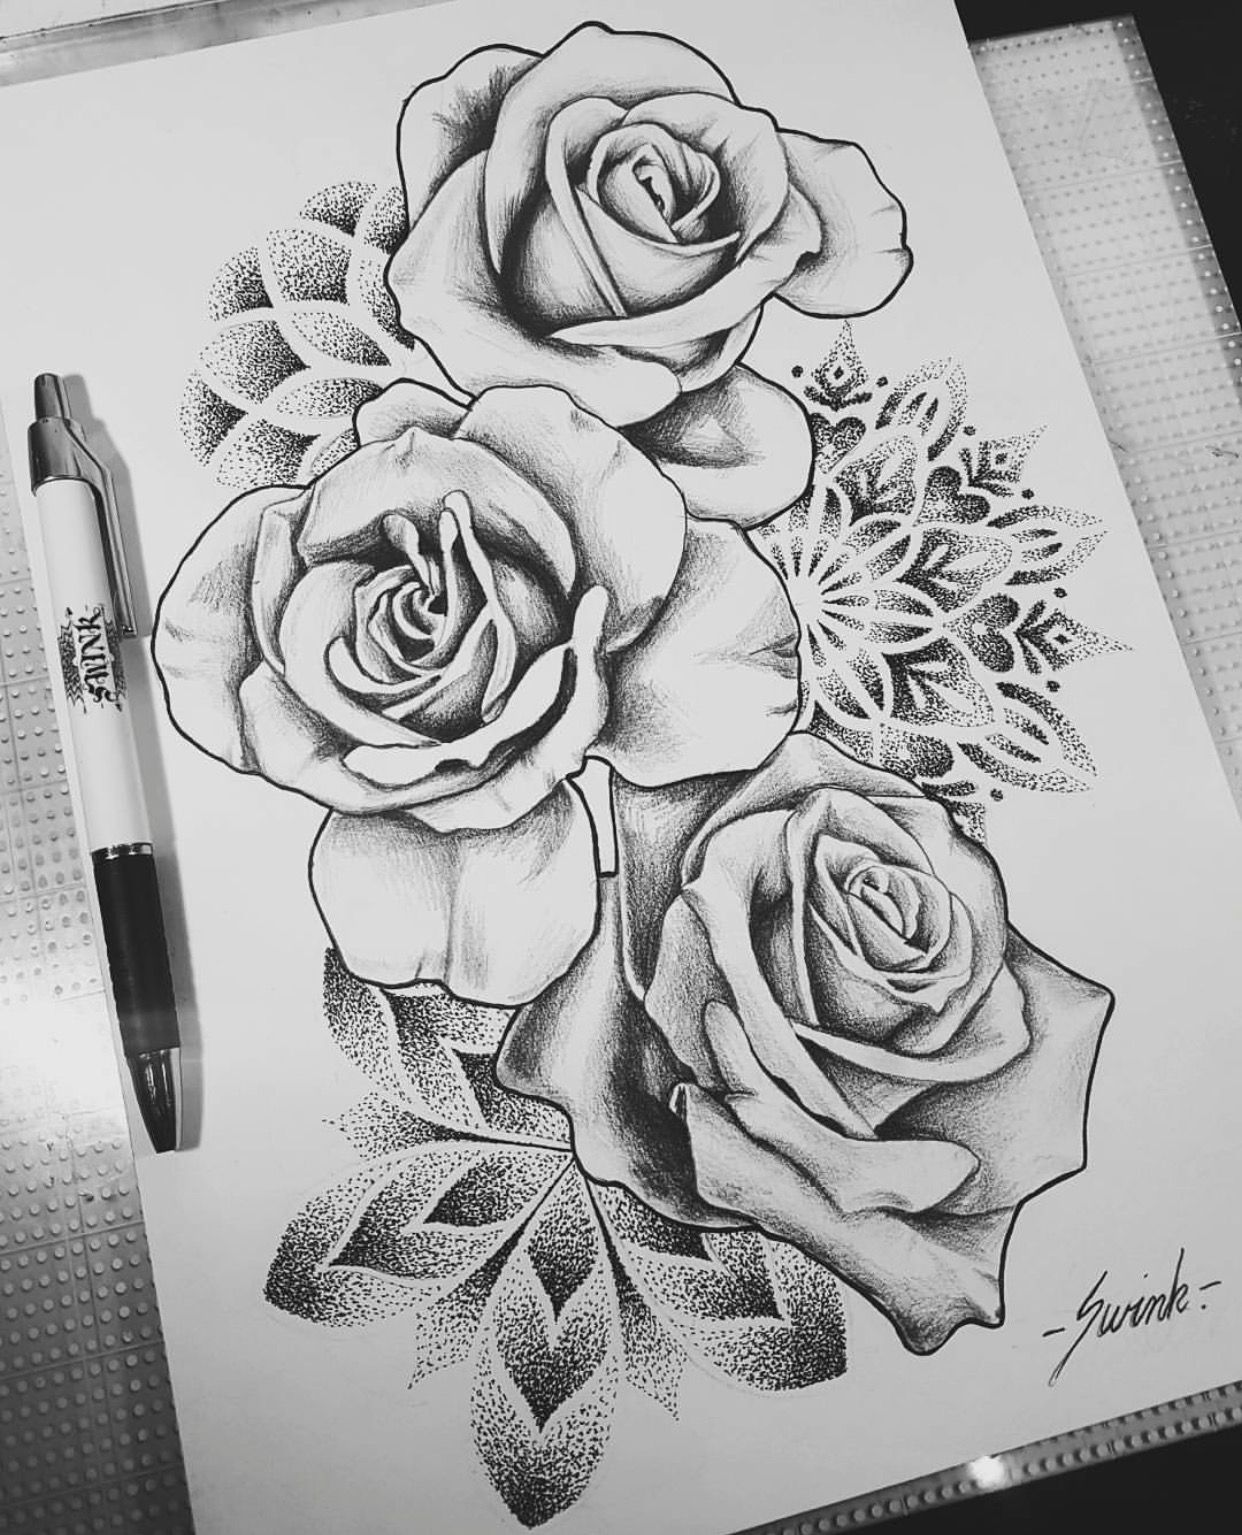 geometrical mandala dot work roses tattoo design drawing found on instagram learning art. Black Bedroom Furniture Sets. Home Design Ideas